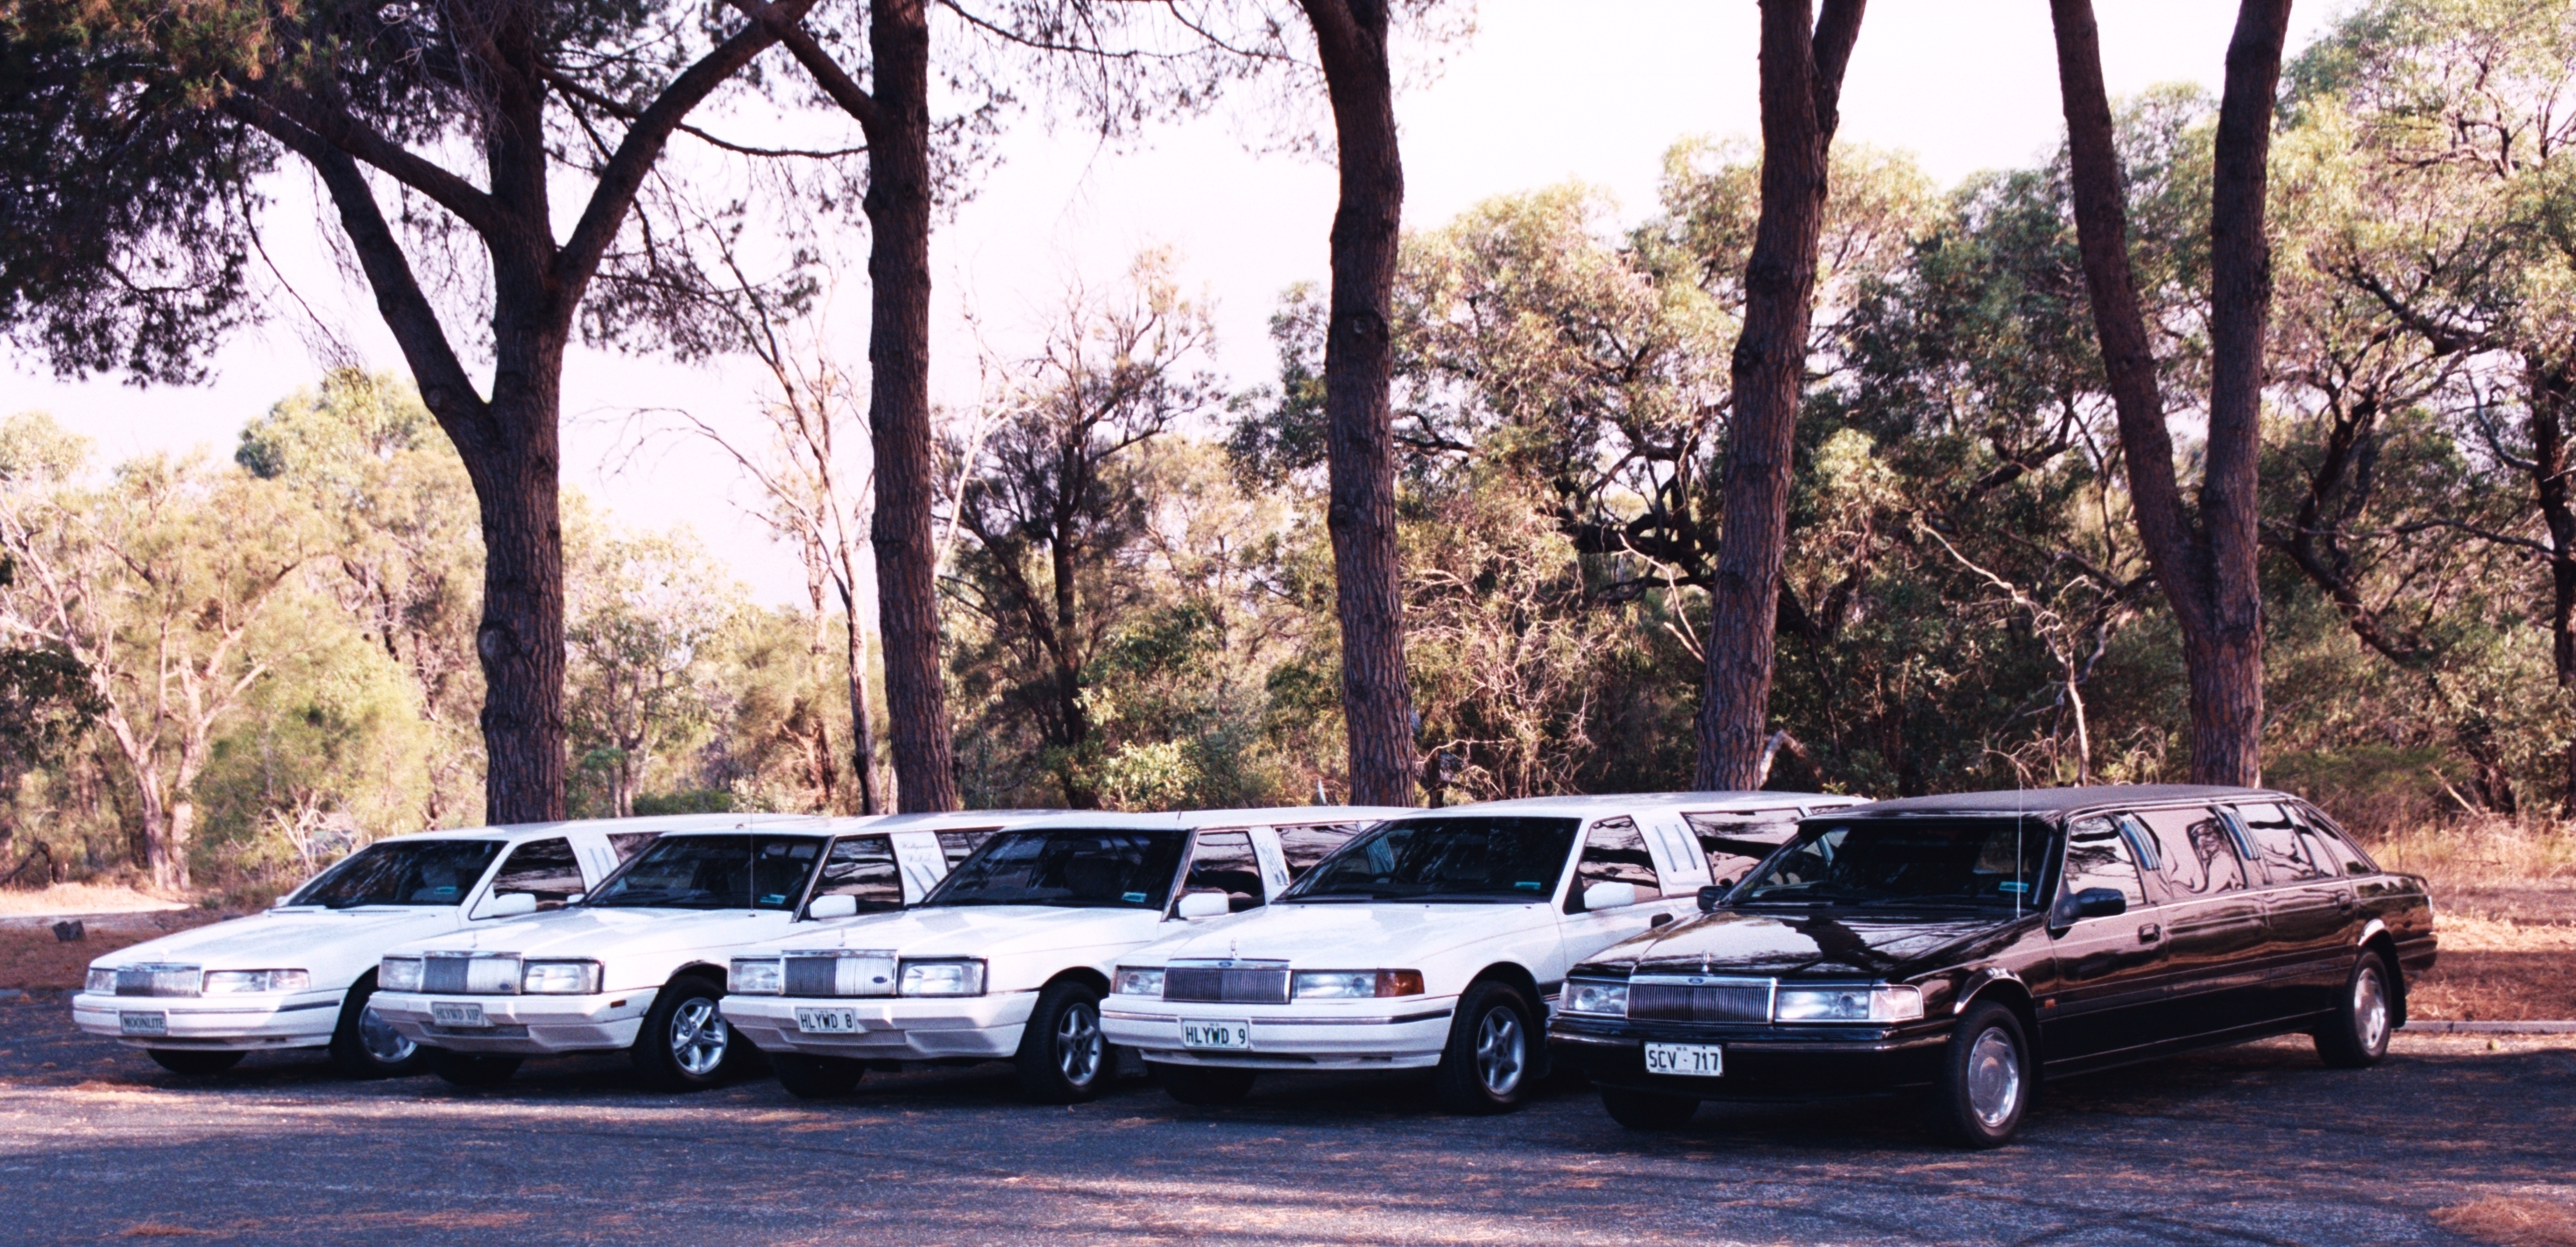 Hollywood VIP Limousines - Accommodation in Surfers Paradise